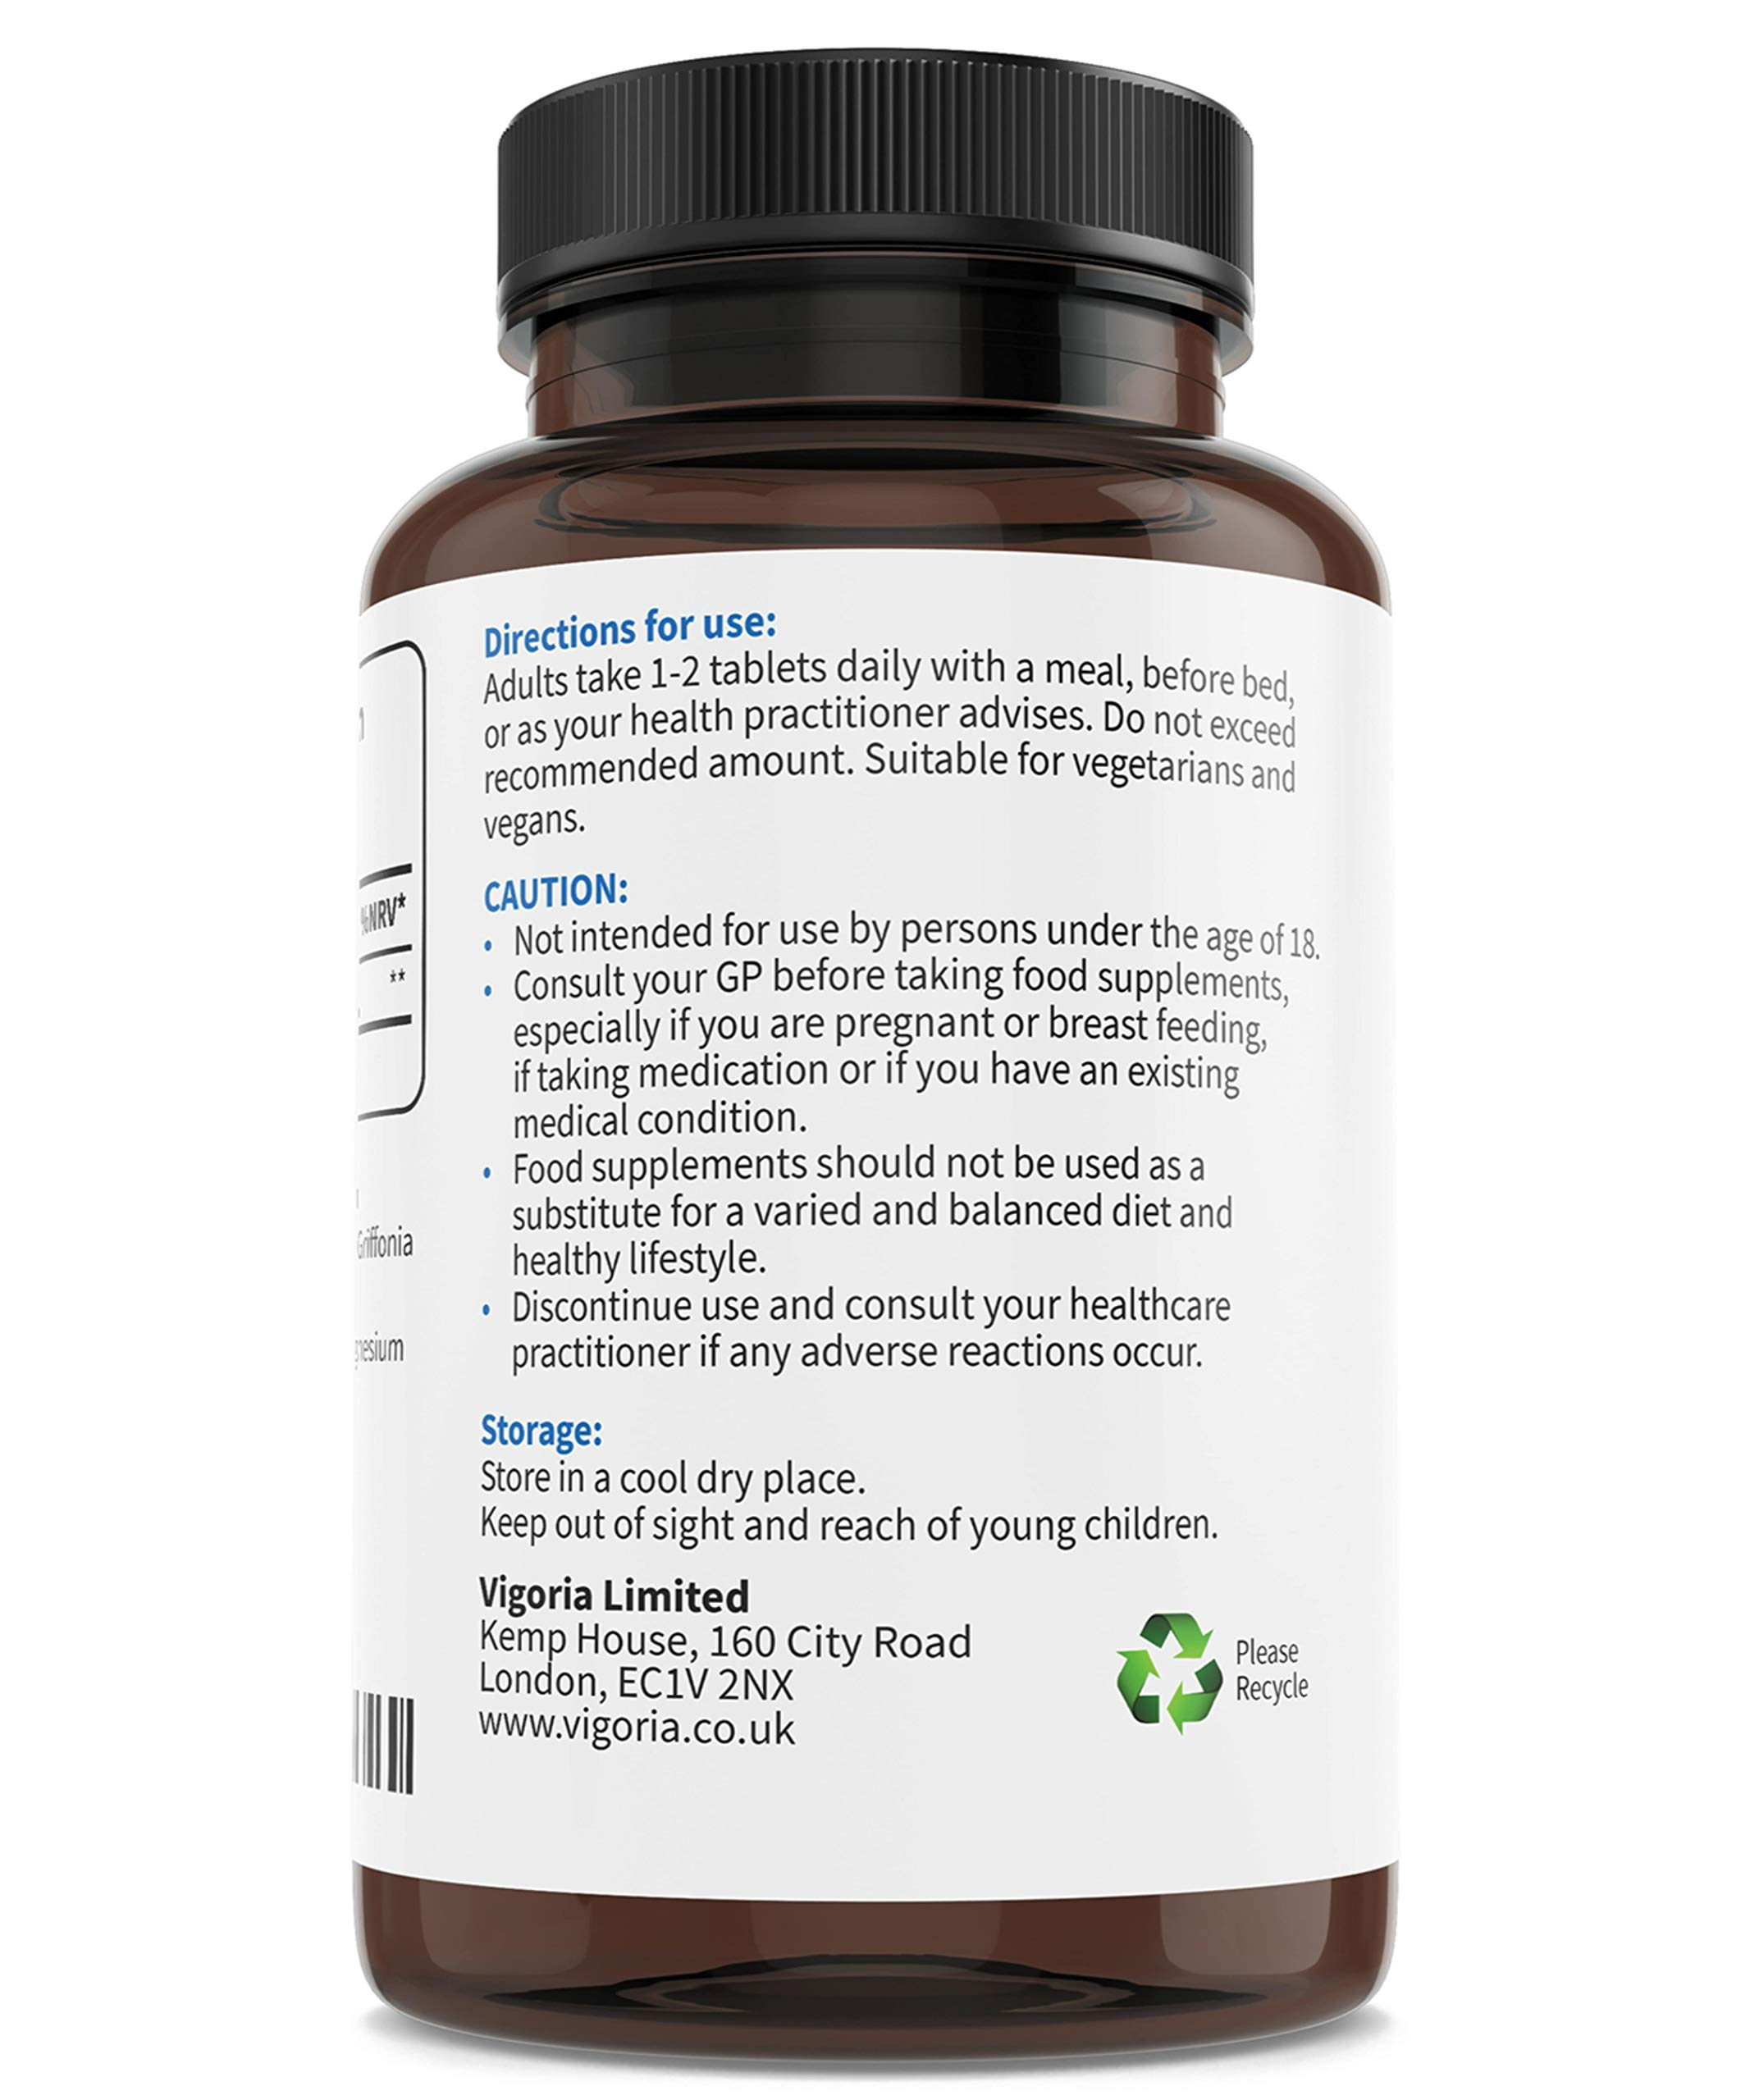 5-HTP Sleeping Aid, Natural Alternative for Stress & Anxiety Relief - Griffonia 8:1 Extract - 180 High-Strength Tablets - Non-GMO - Vegan - Allergen-Free - 6 Months Supply - Made in The UK